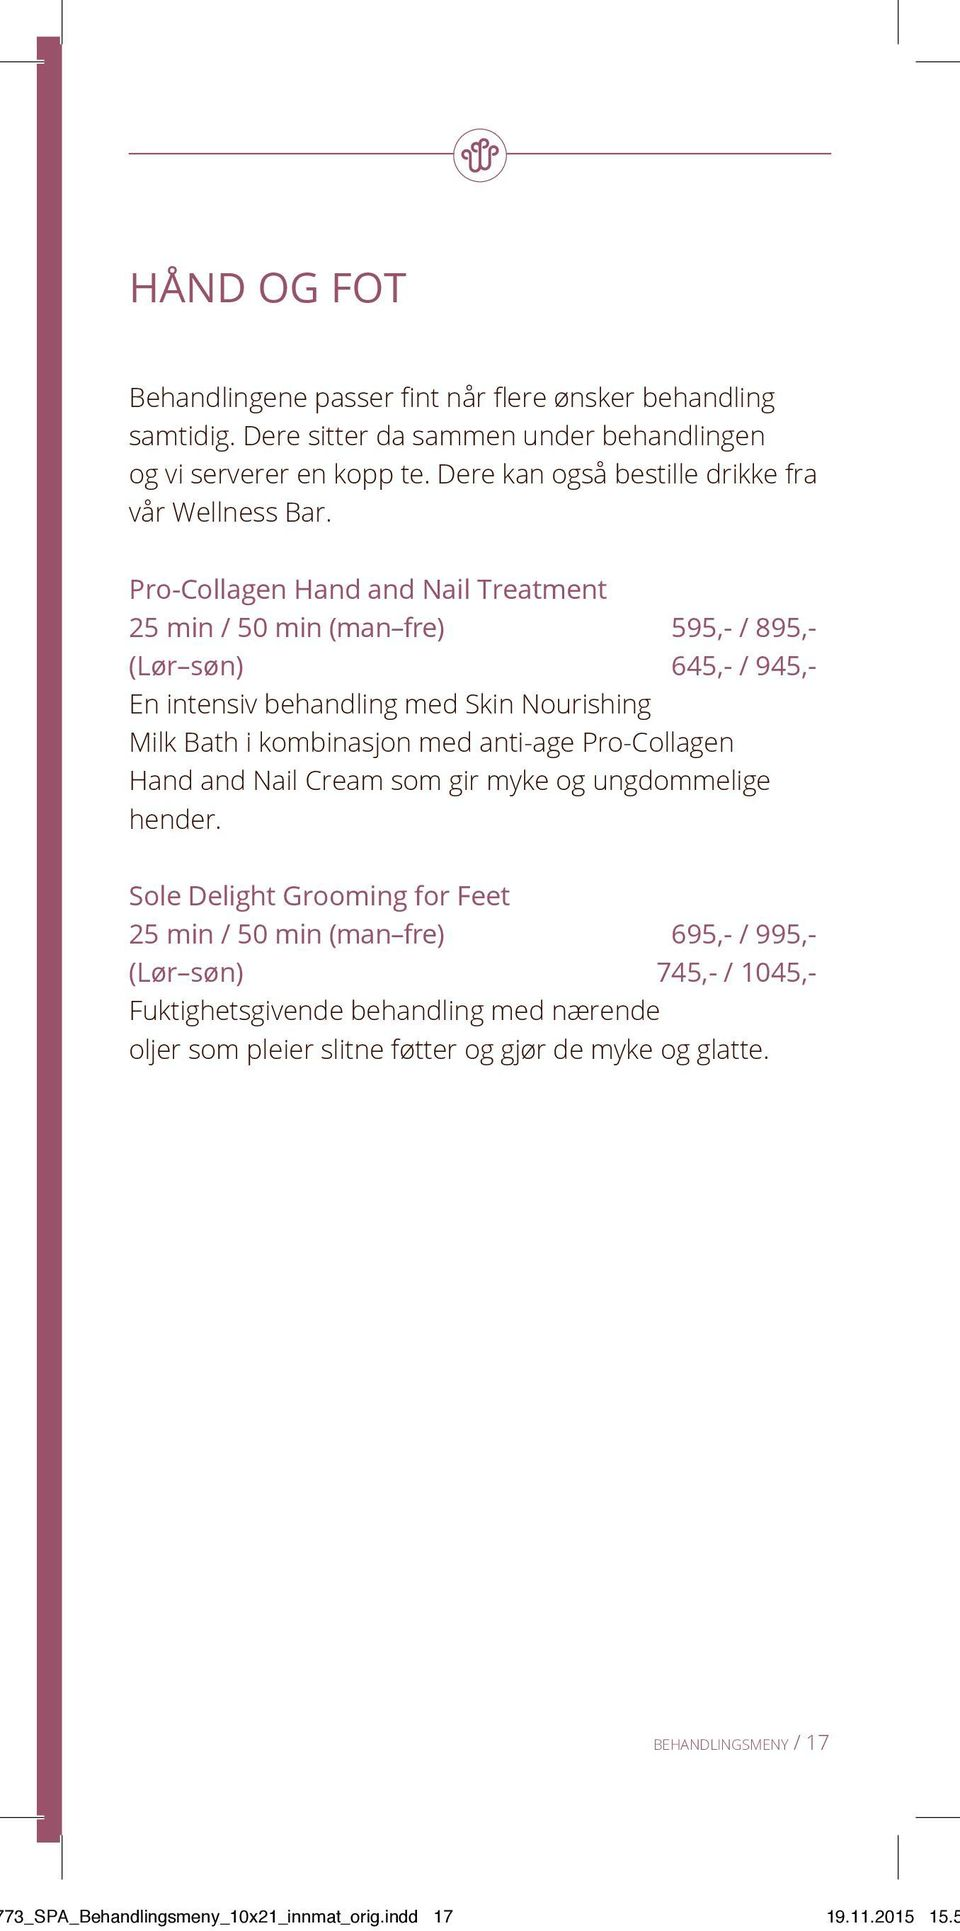 Pro-Collagen Hand and Nail Treatment 25 min / 50 min (man fre) 595,- / 895,- (Lør søn) 645,- / 945,- En intensiv behandling med Skin Nourishing Milk Bath i kombinasjon med anti-age